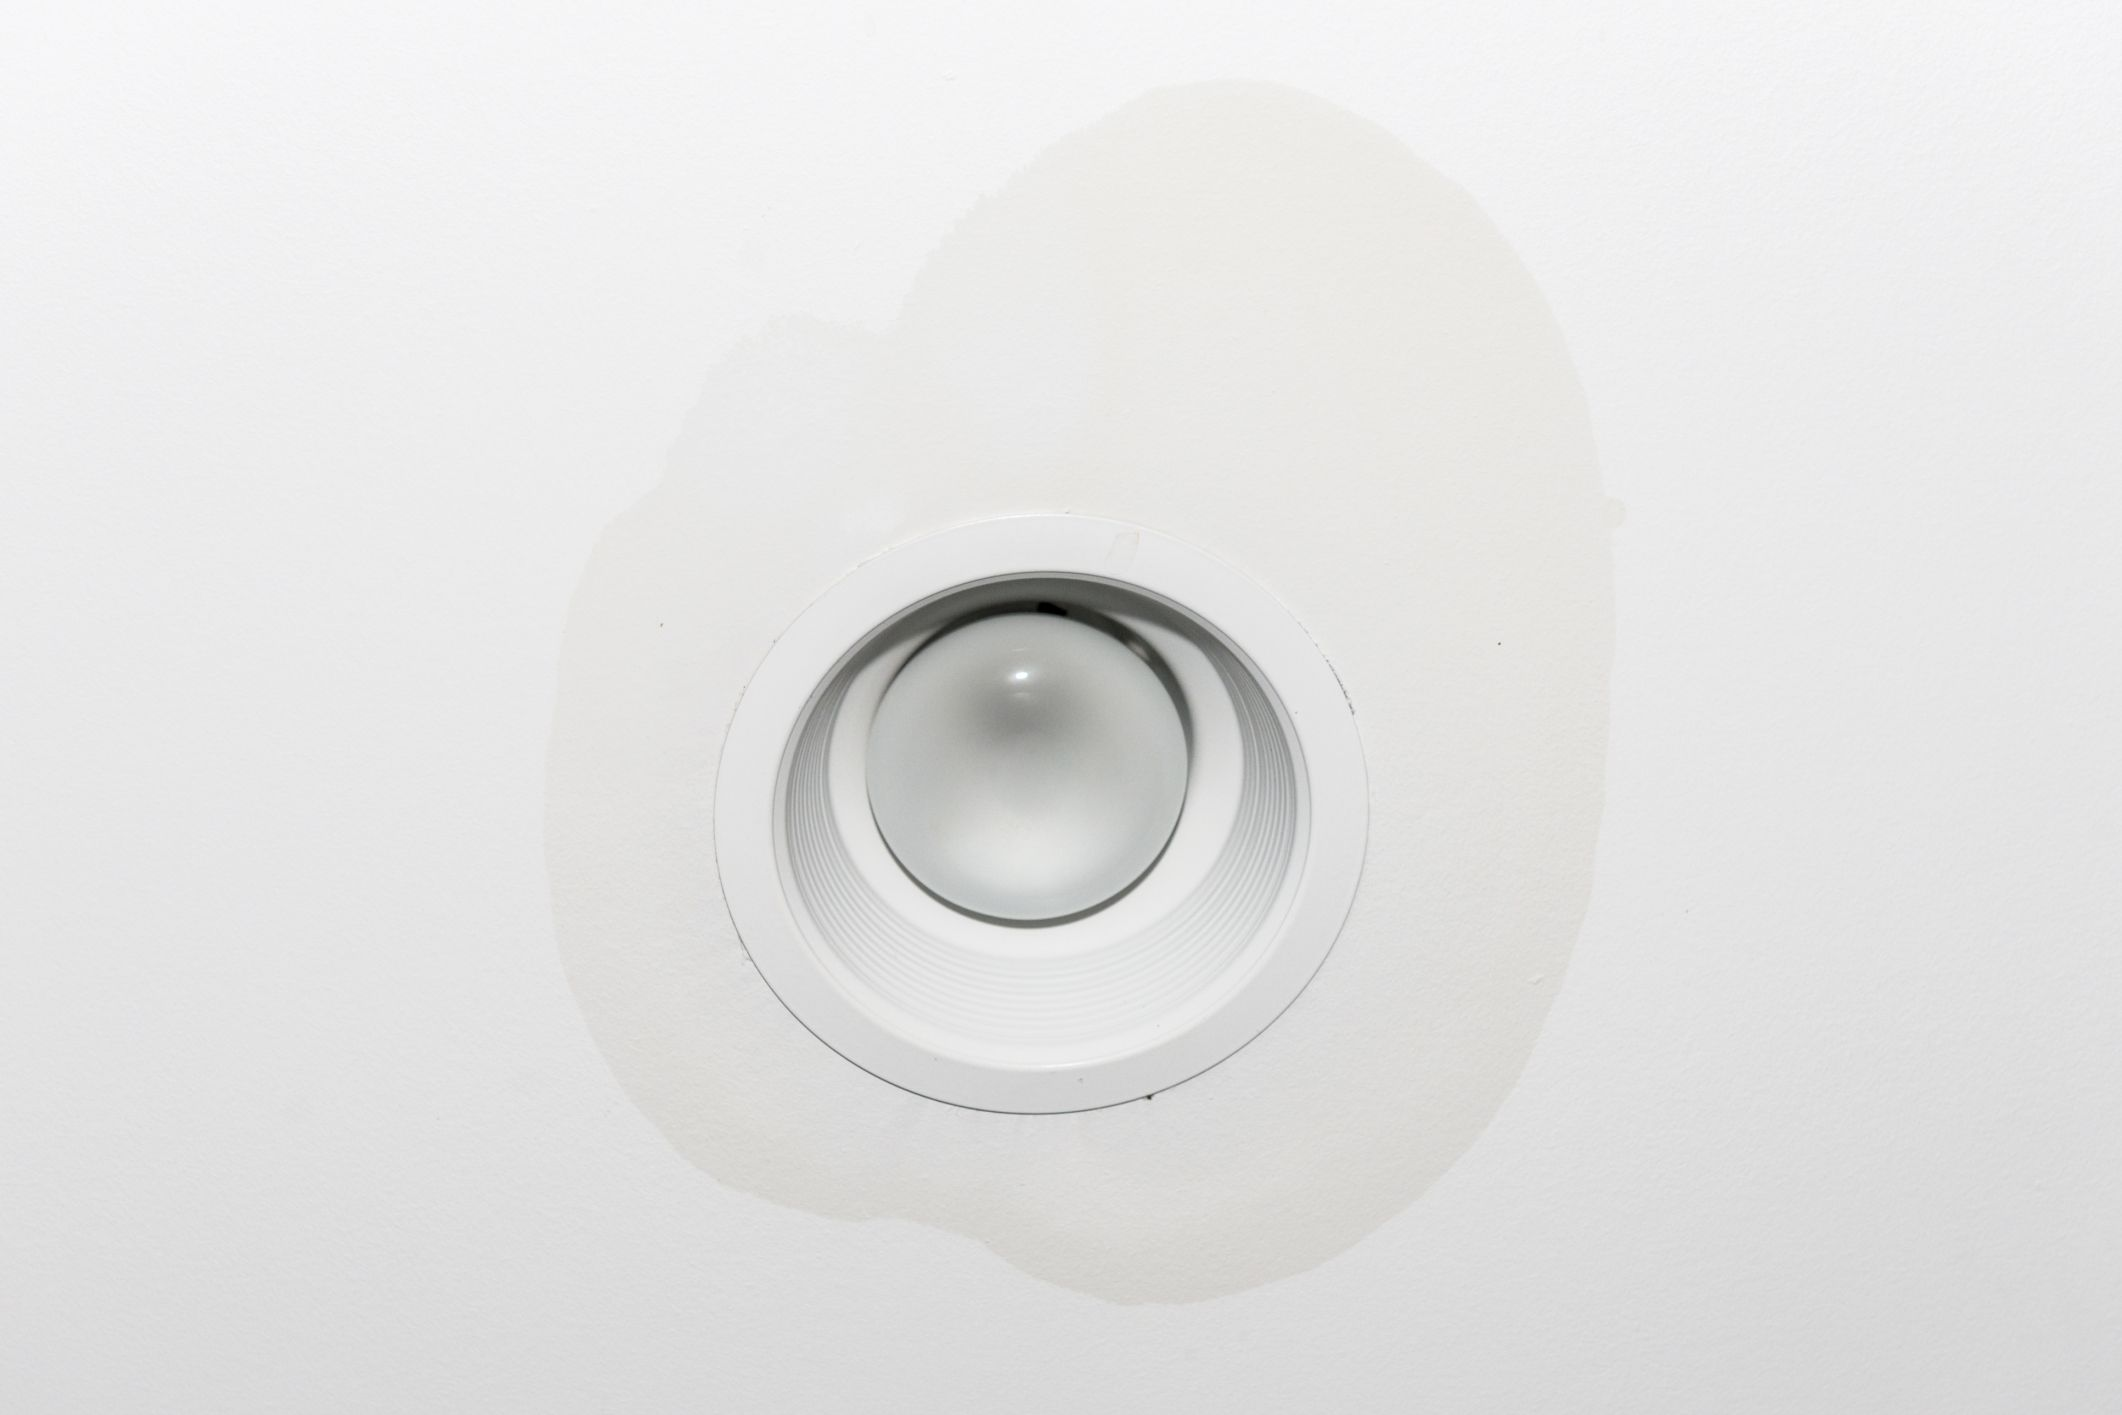 Water Damage Around A Light Fixture On A White Ceiling Ceiling Leak Light Fixtures Fixtures